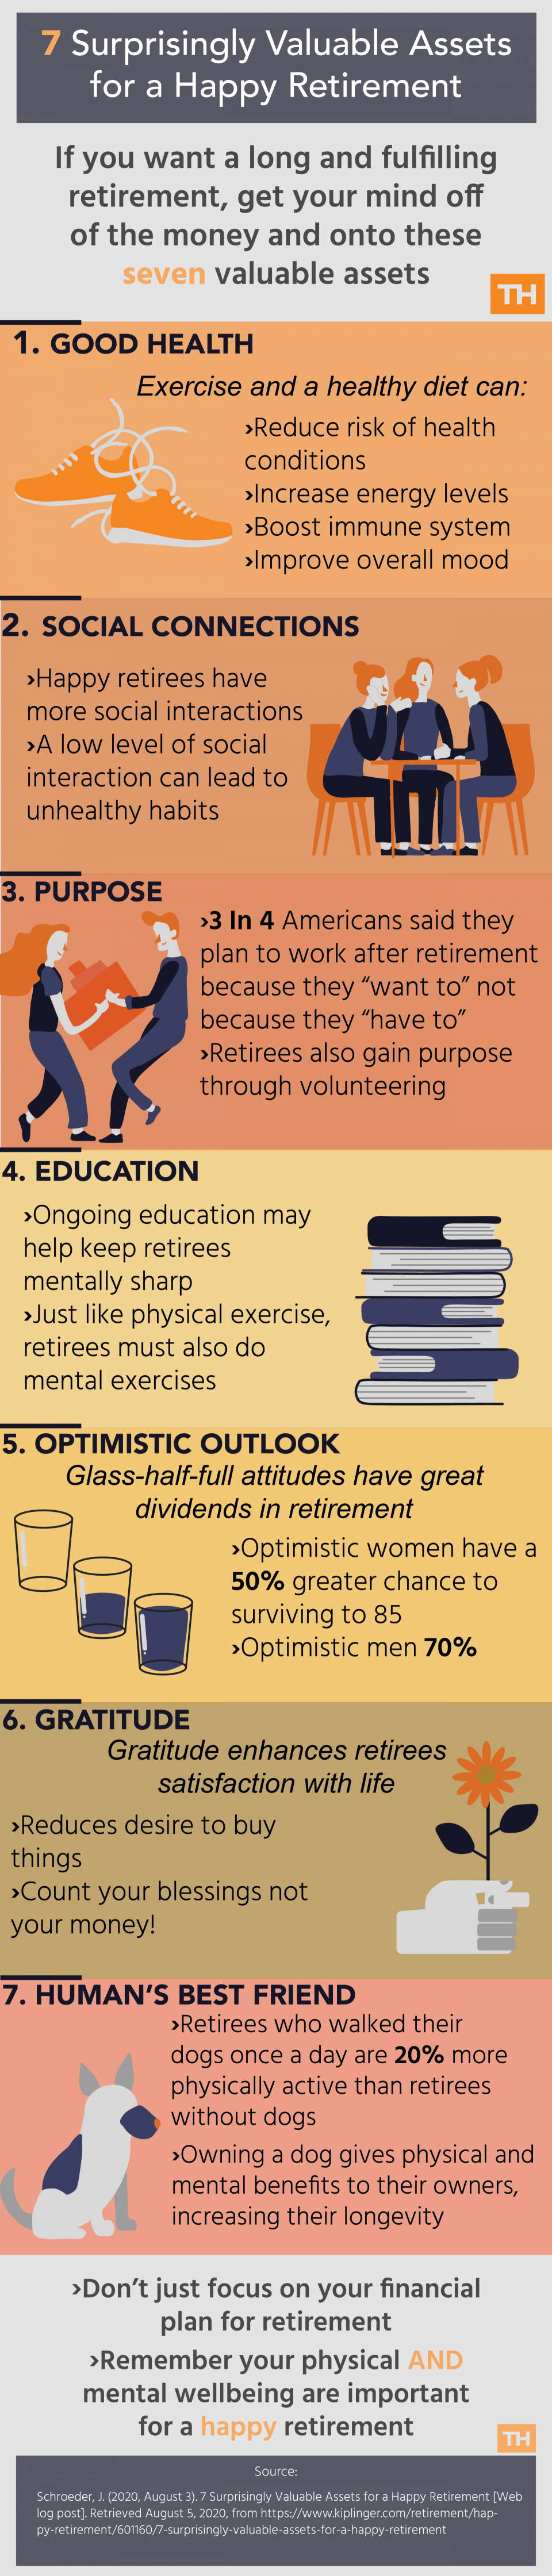 7 Tips to a Happy Retirement